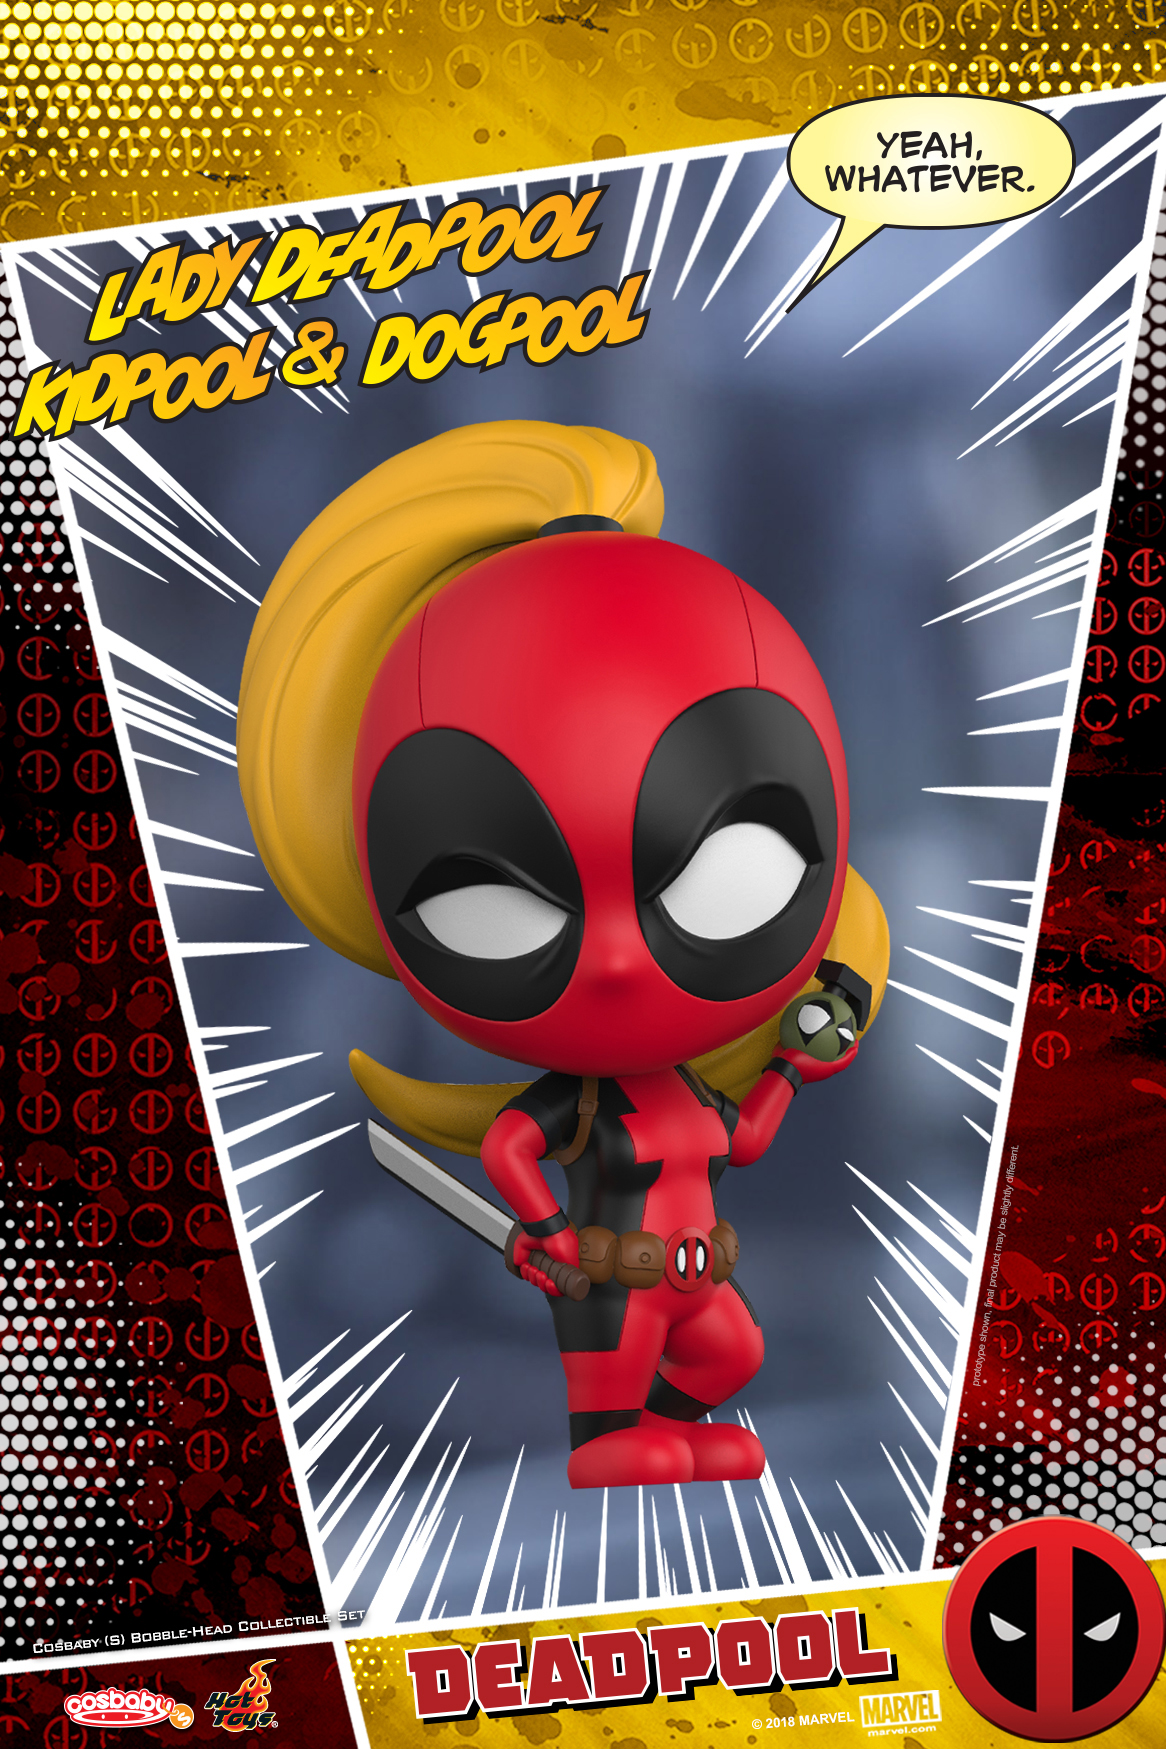 Hot-Toys---Lady-Deadpool,-Kidpool-&-Dogpool-Cosbaby-(S)-Set_PR2